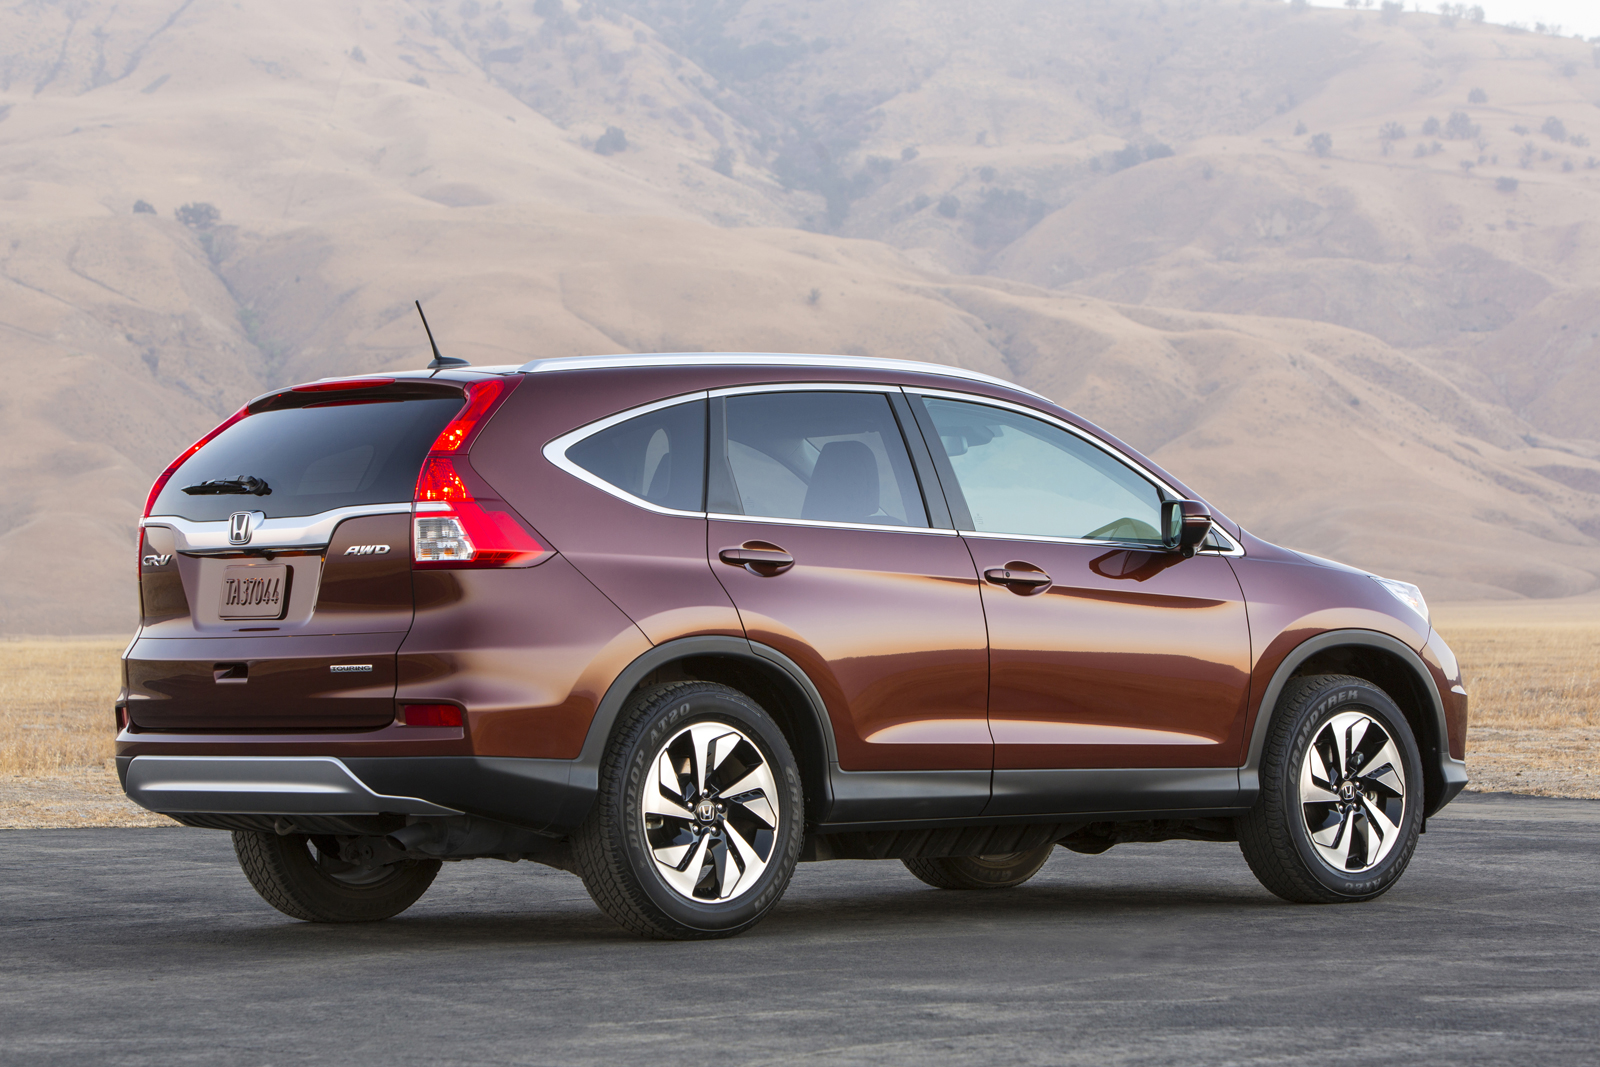 2017 Honda Cr V Spy Photos | 2016 - 2017 Best Cars Review